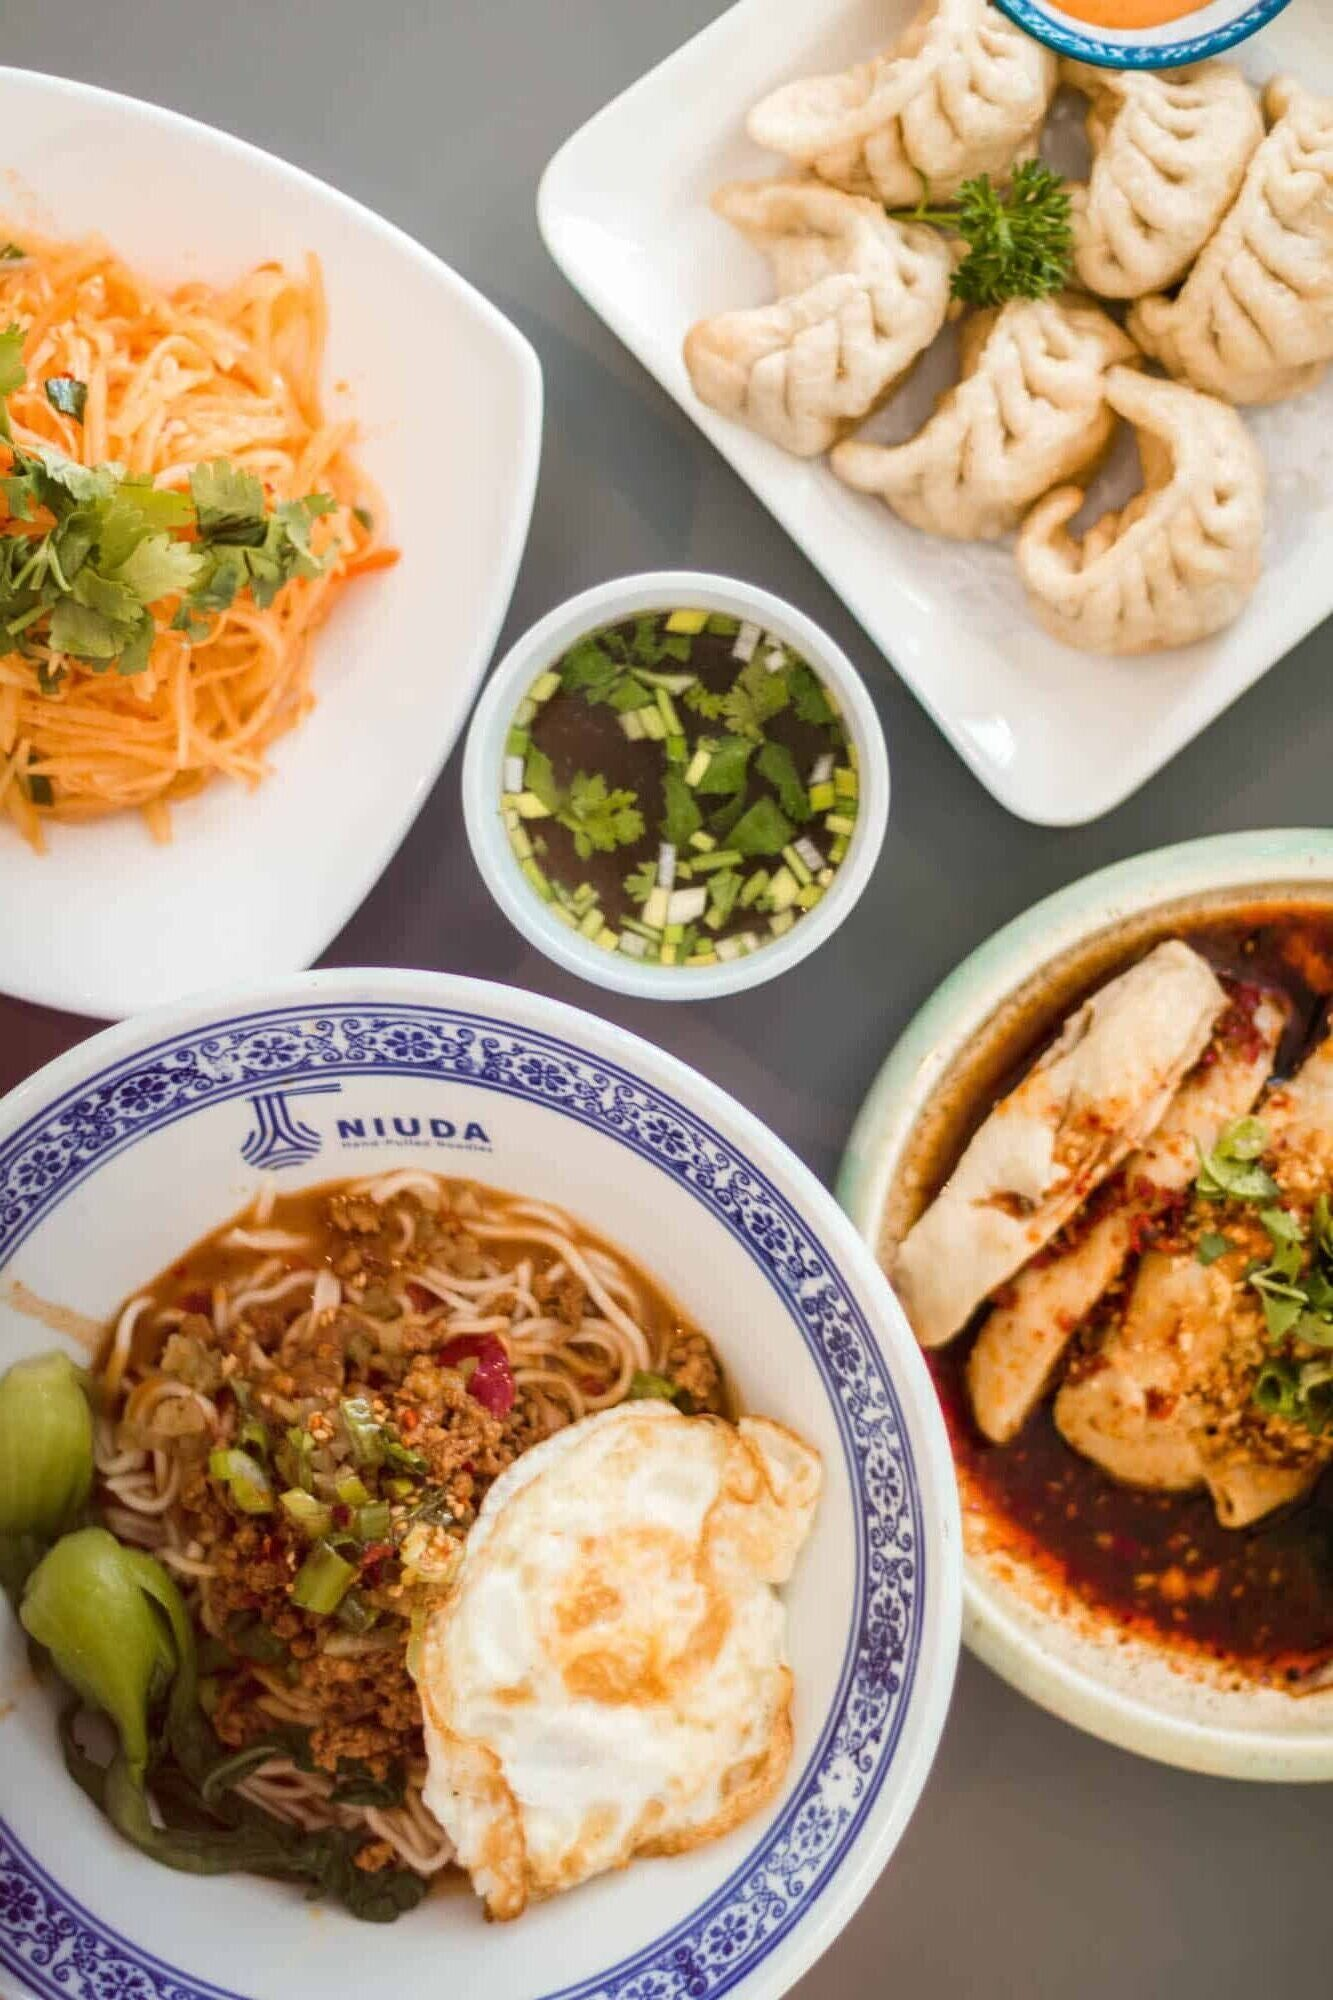 Niuda Hand-Pulled Noodles serves up Chinese noodles in ramen-inspired broth in Toronto